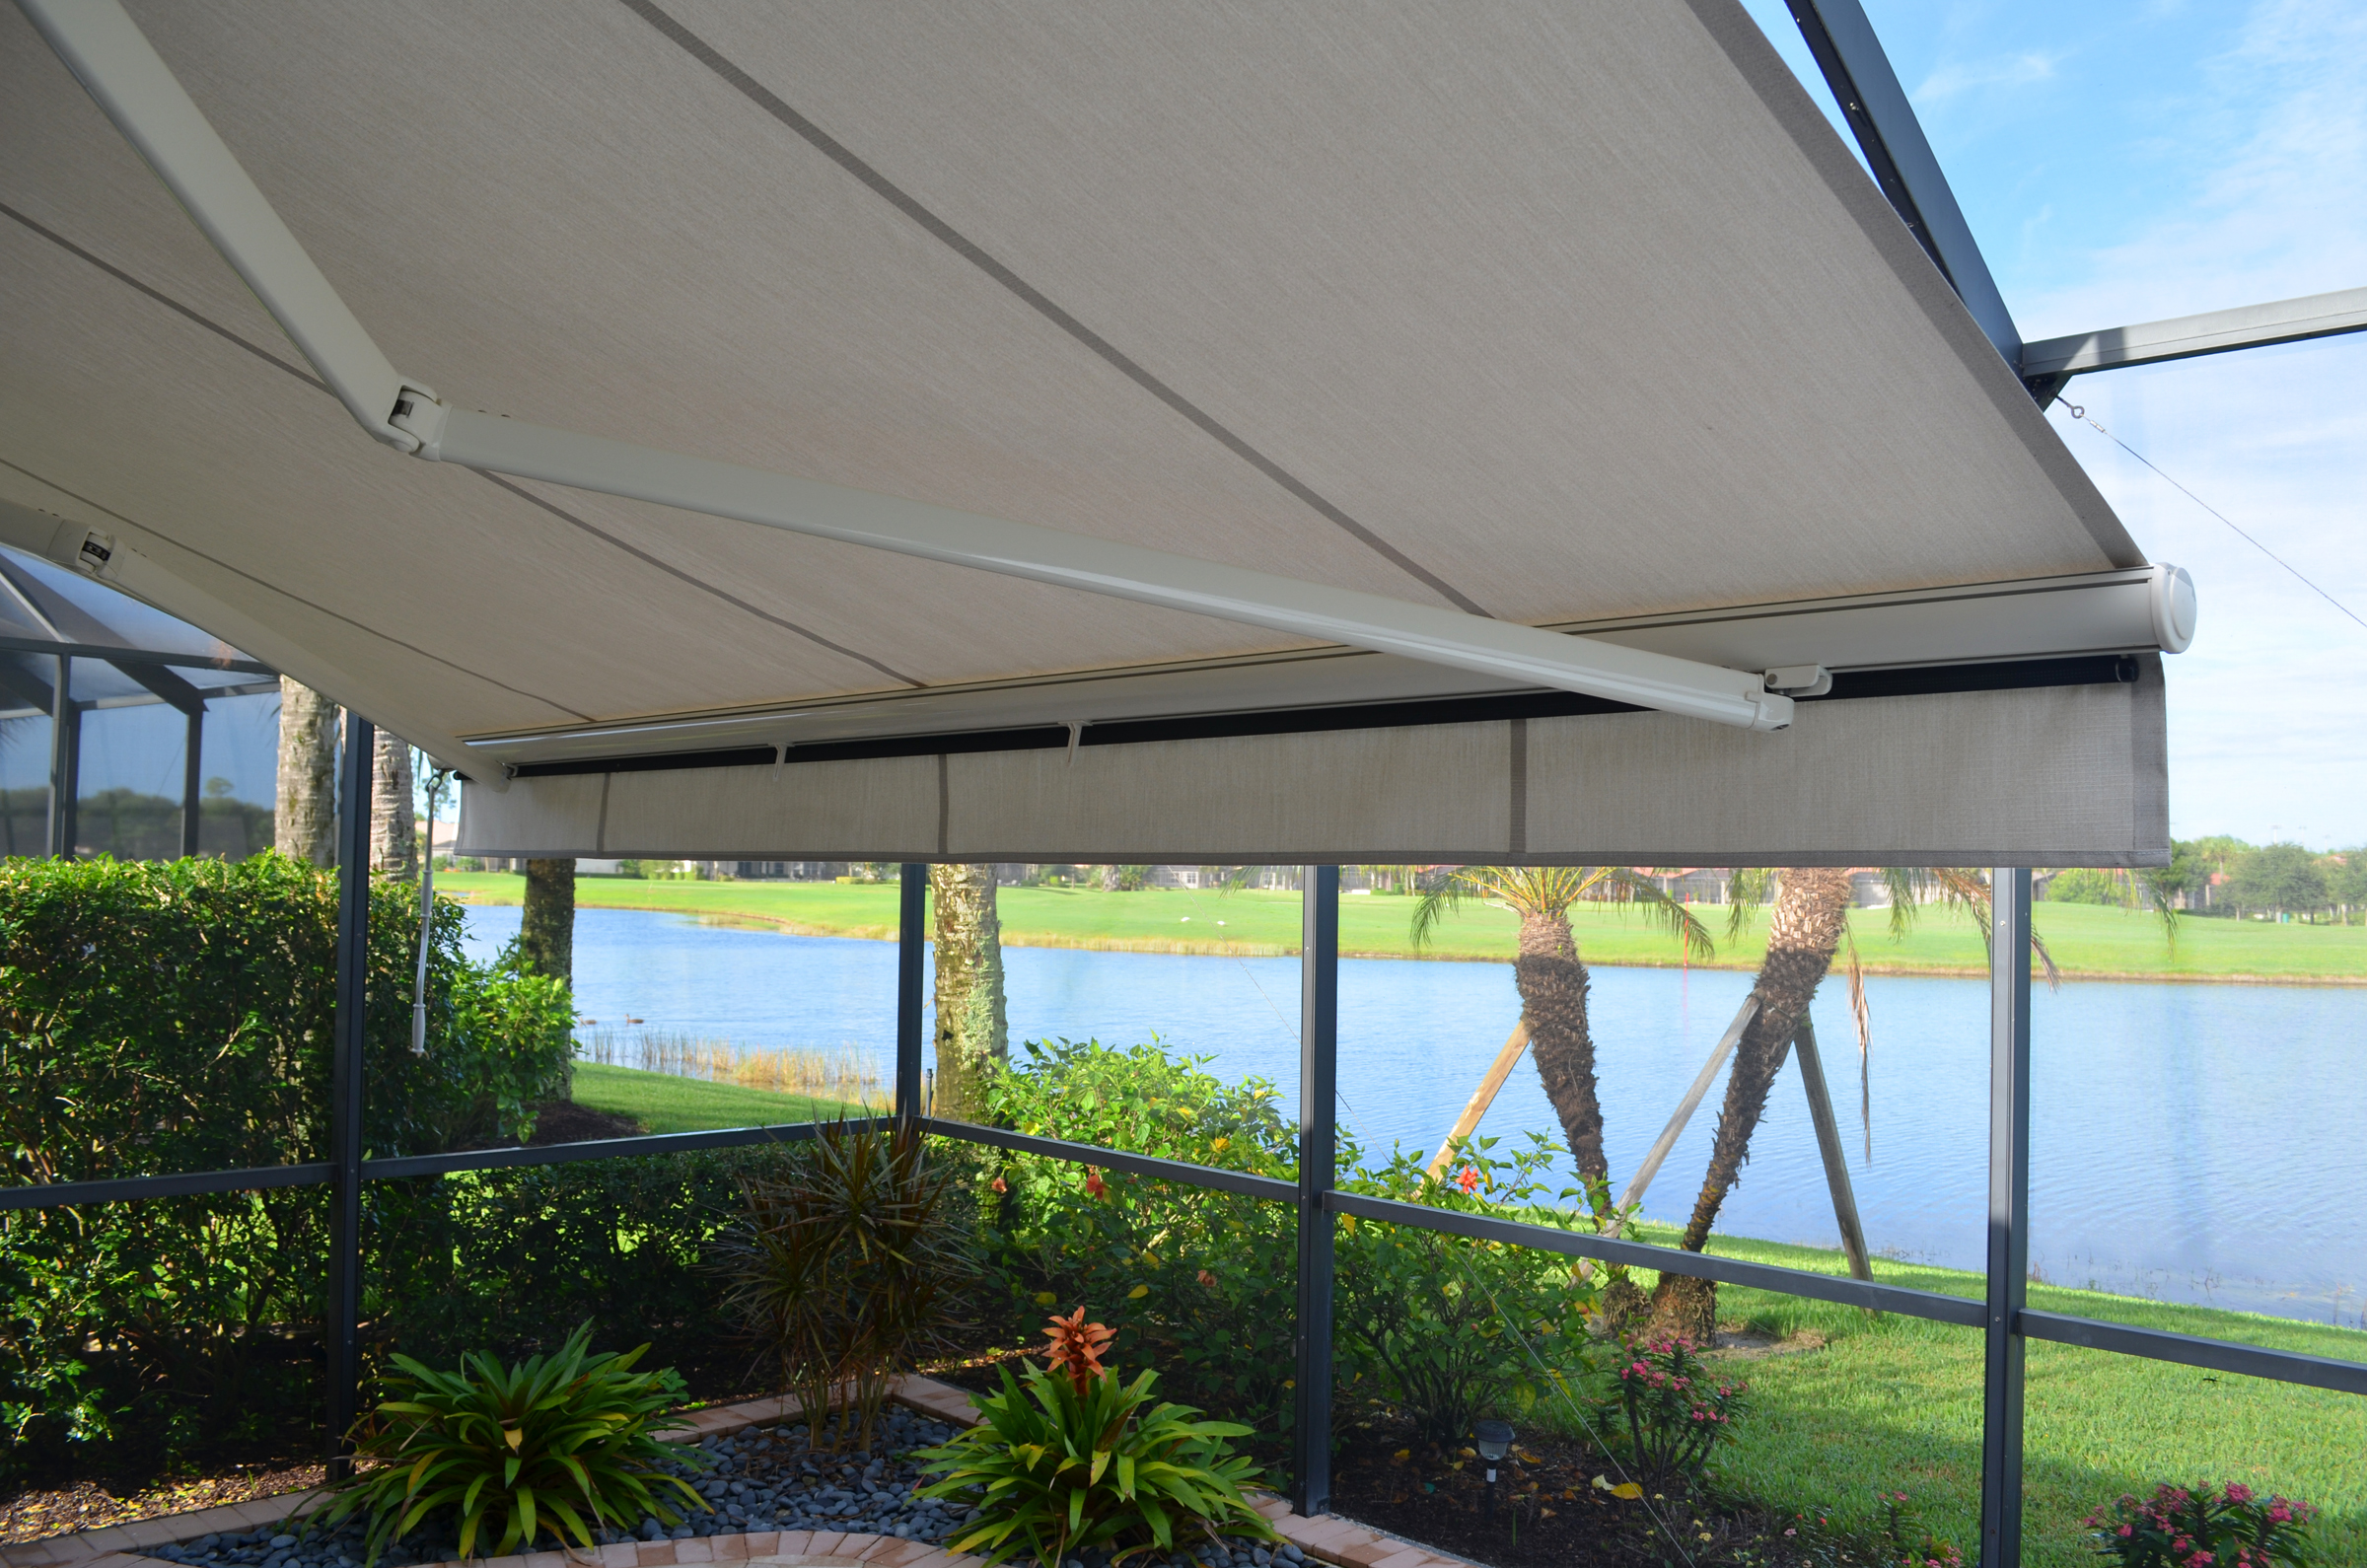 retractable_awning_02.jpg